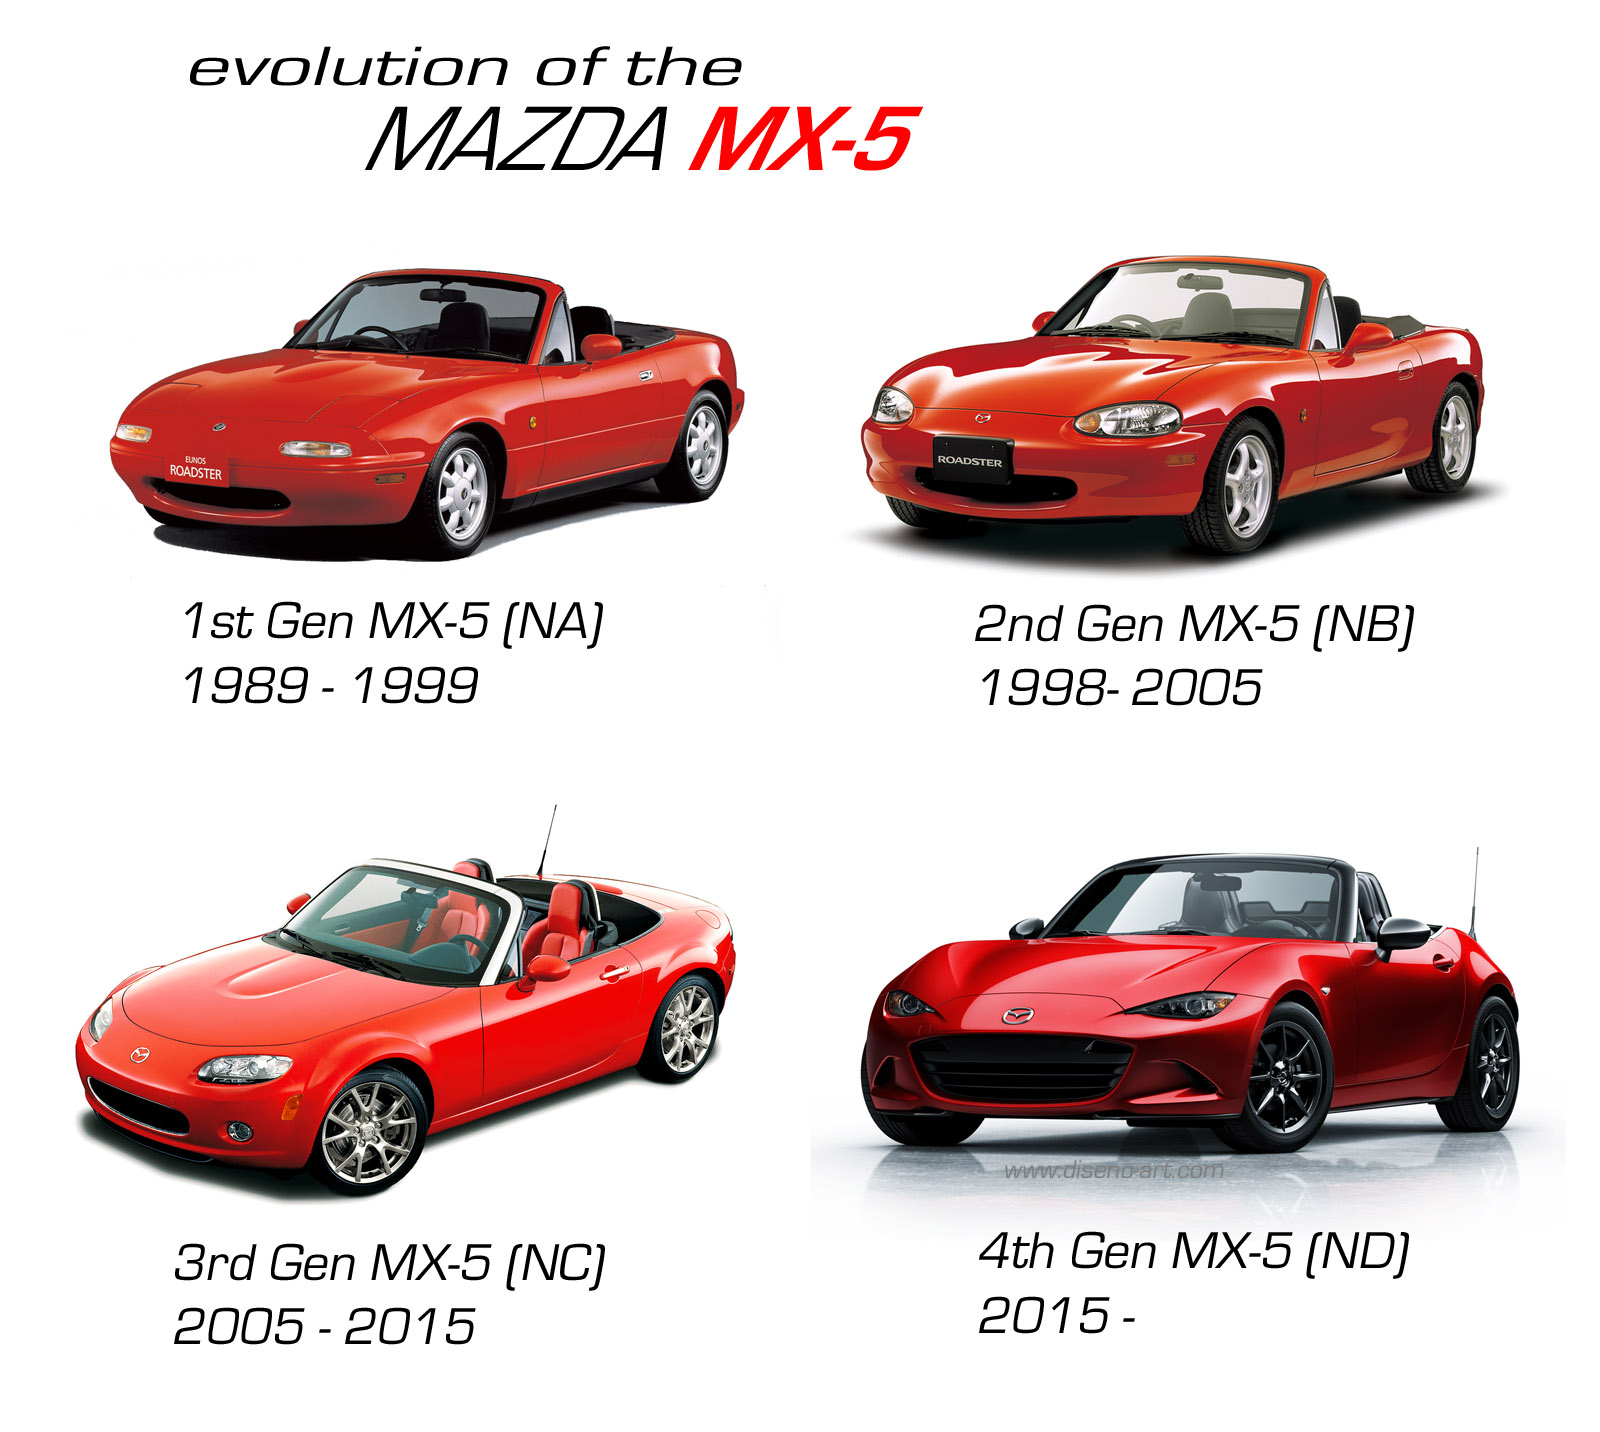 23 best mazda mx 5 images on pinterest mazda mx 5 mazda miata and dream cars